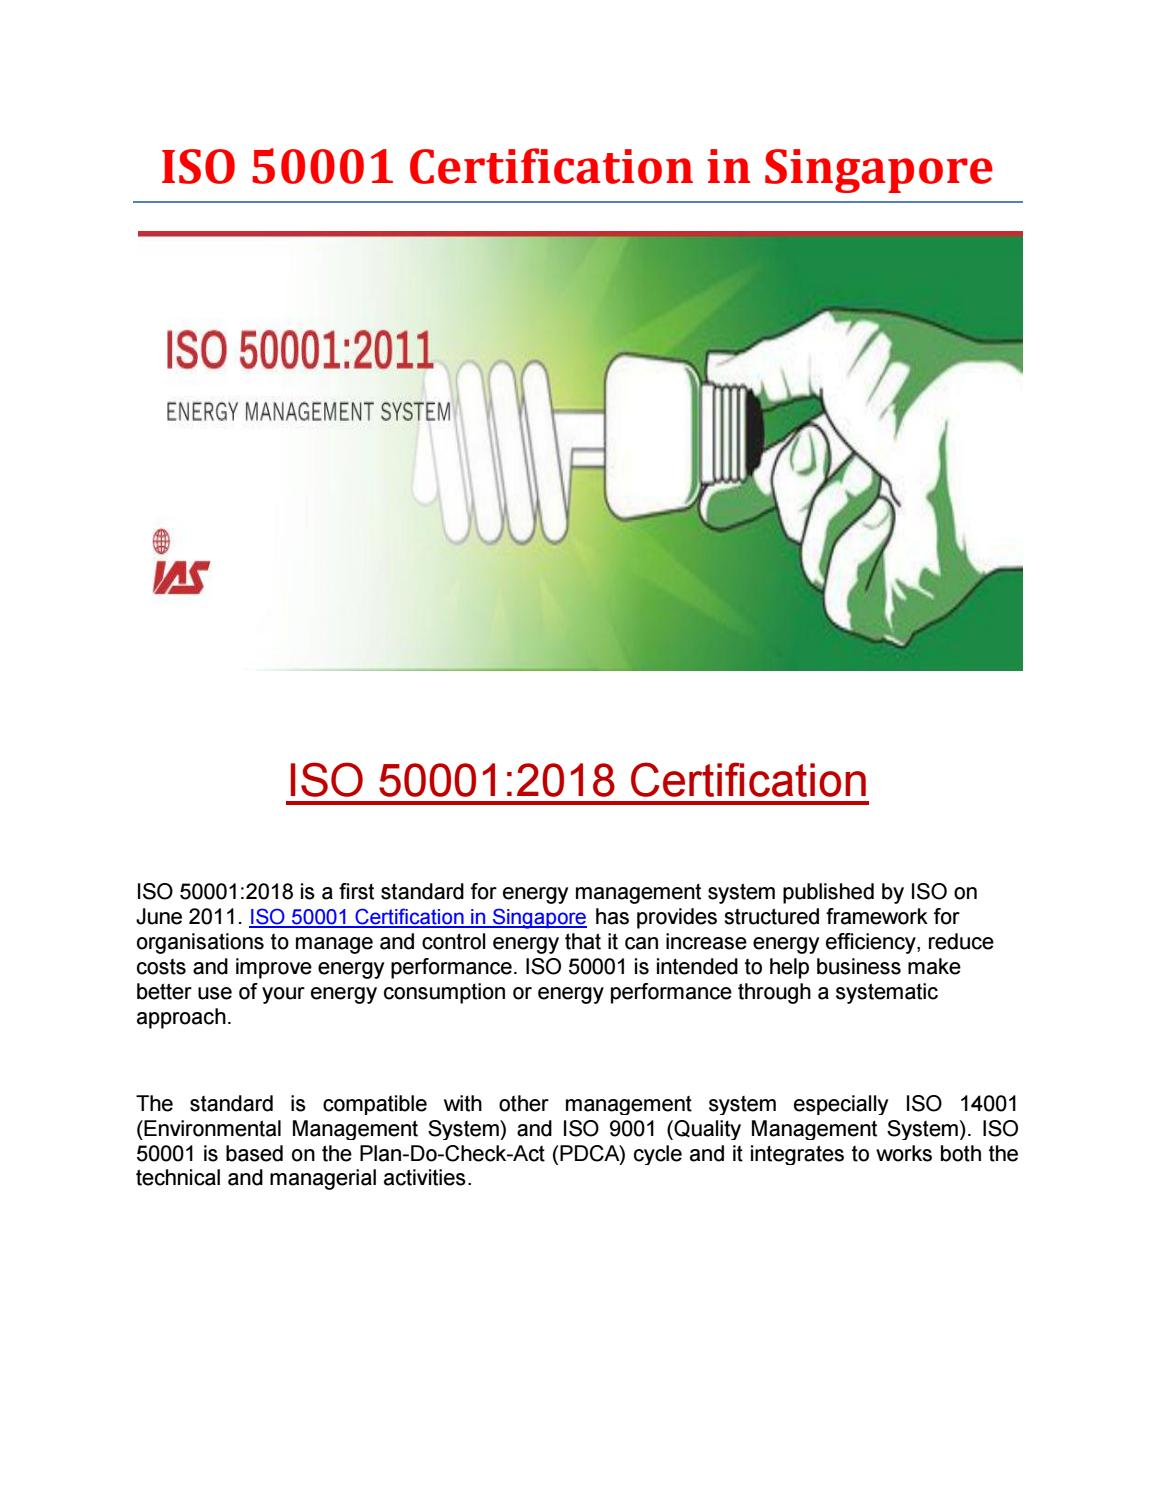 ISO 50001 Certification in Singapore by iassingapore - issuu